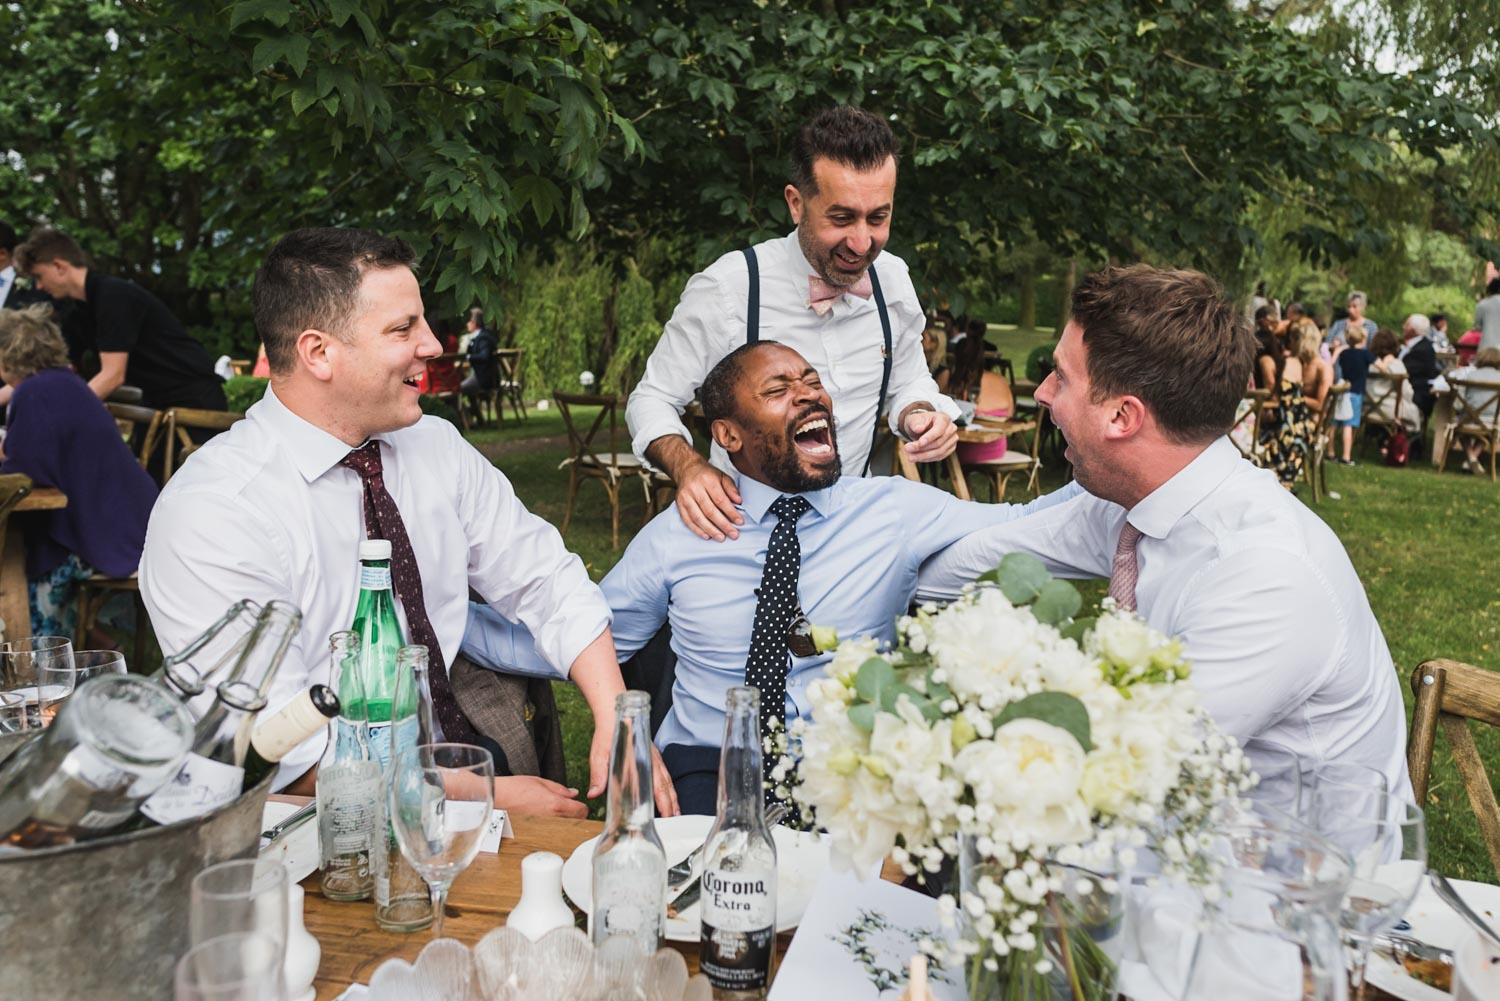 Guests having fun at wedding, Carine Bea Photography